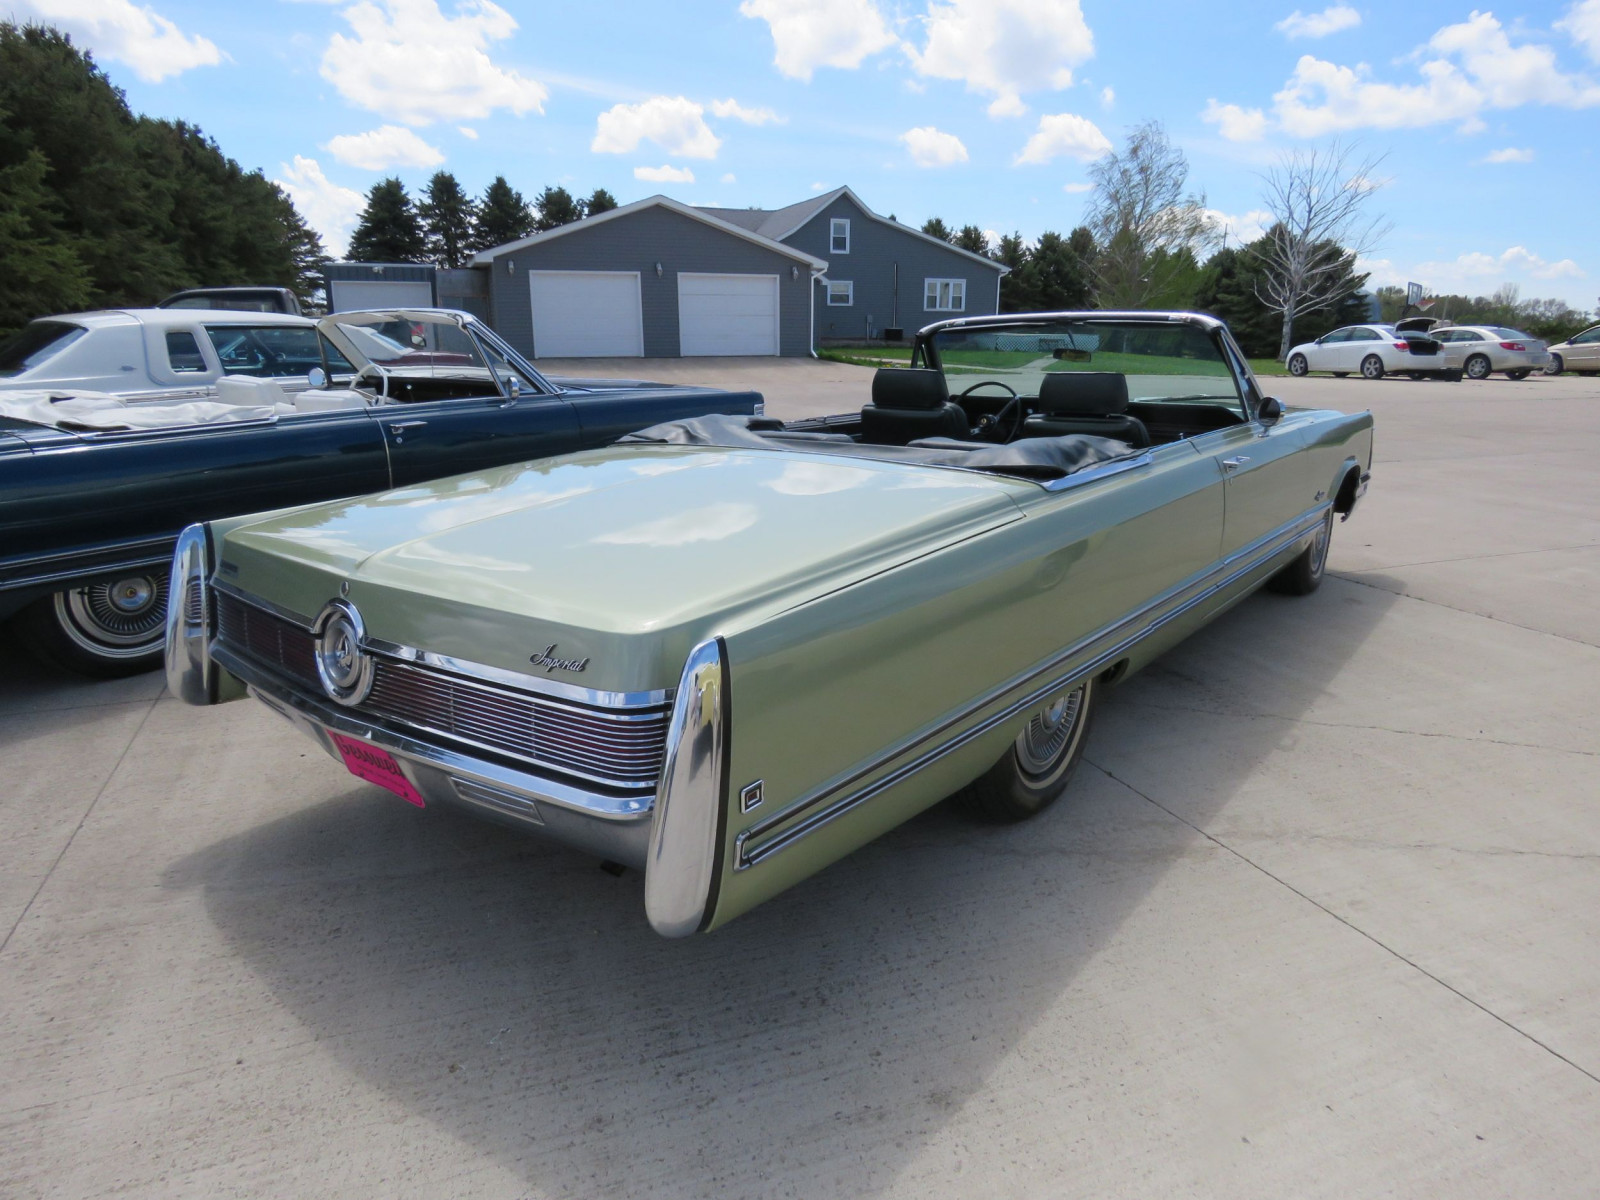 1968 Chrysler Imperial Crown Convertible - Image 5